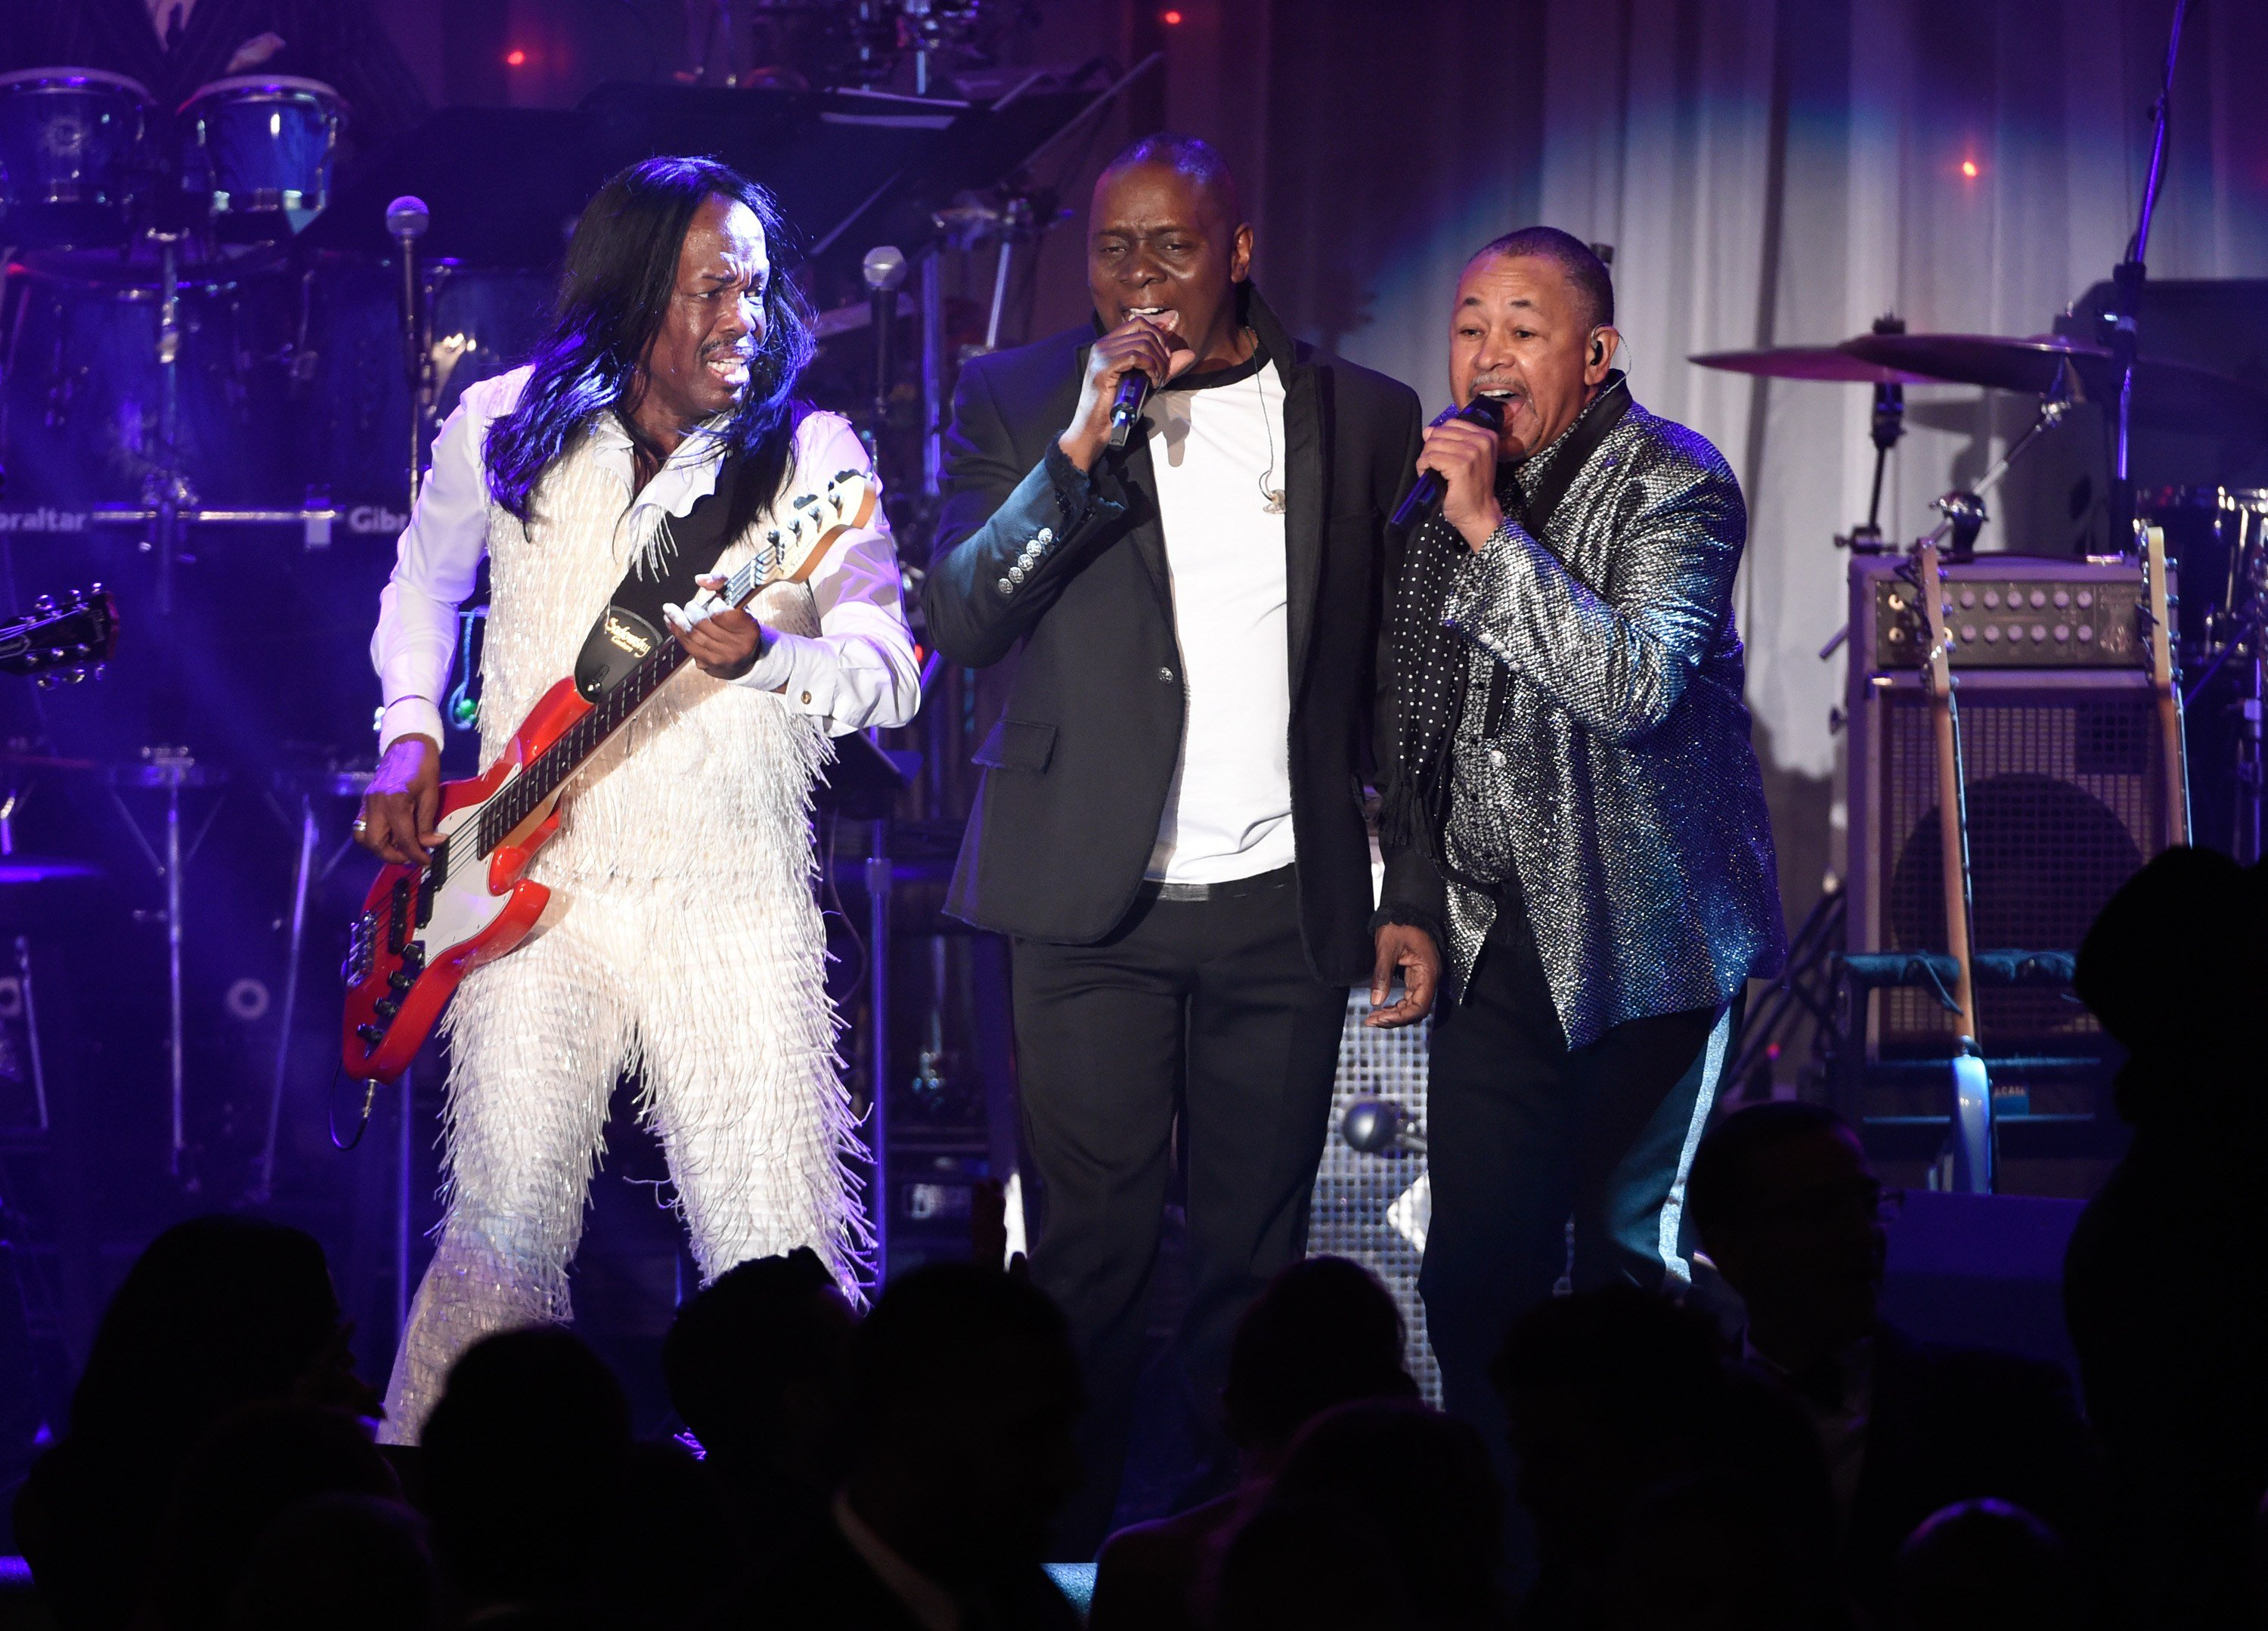 Verdine White, from left, Philip Bailey and Ralph Johnson of Earth, Wind and Fire perform at the 2016 Clive Davis Pre-Grammy Gala at the Beverly Hilton Hotel on Sunday, Feb. 14, 2016, in Beverly Hills, Calif.